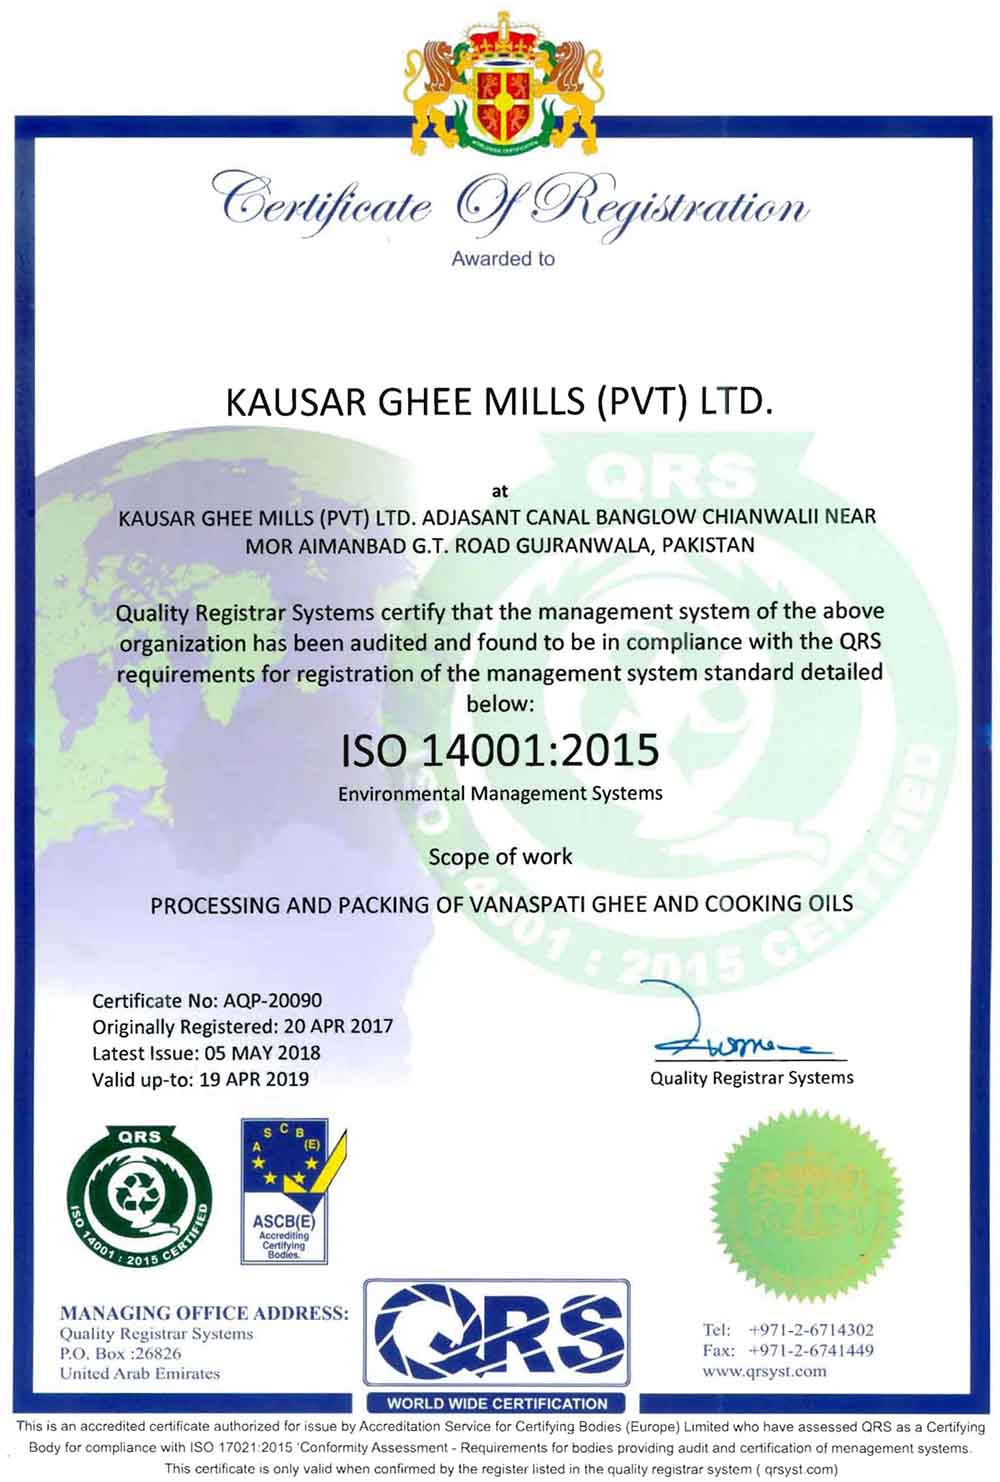 kausar-corporate-qc-certifications-ghee-2